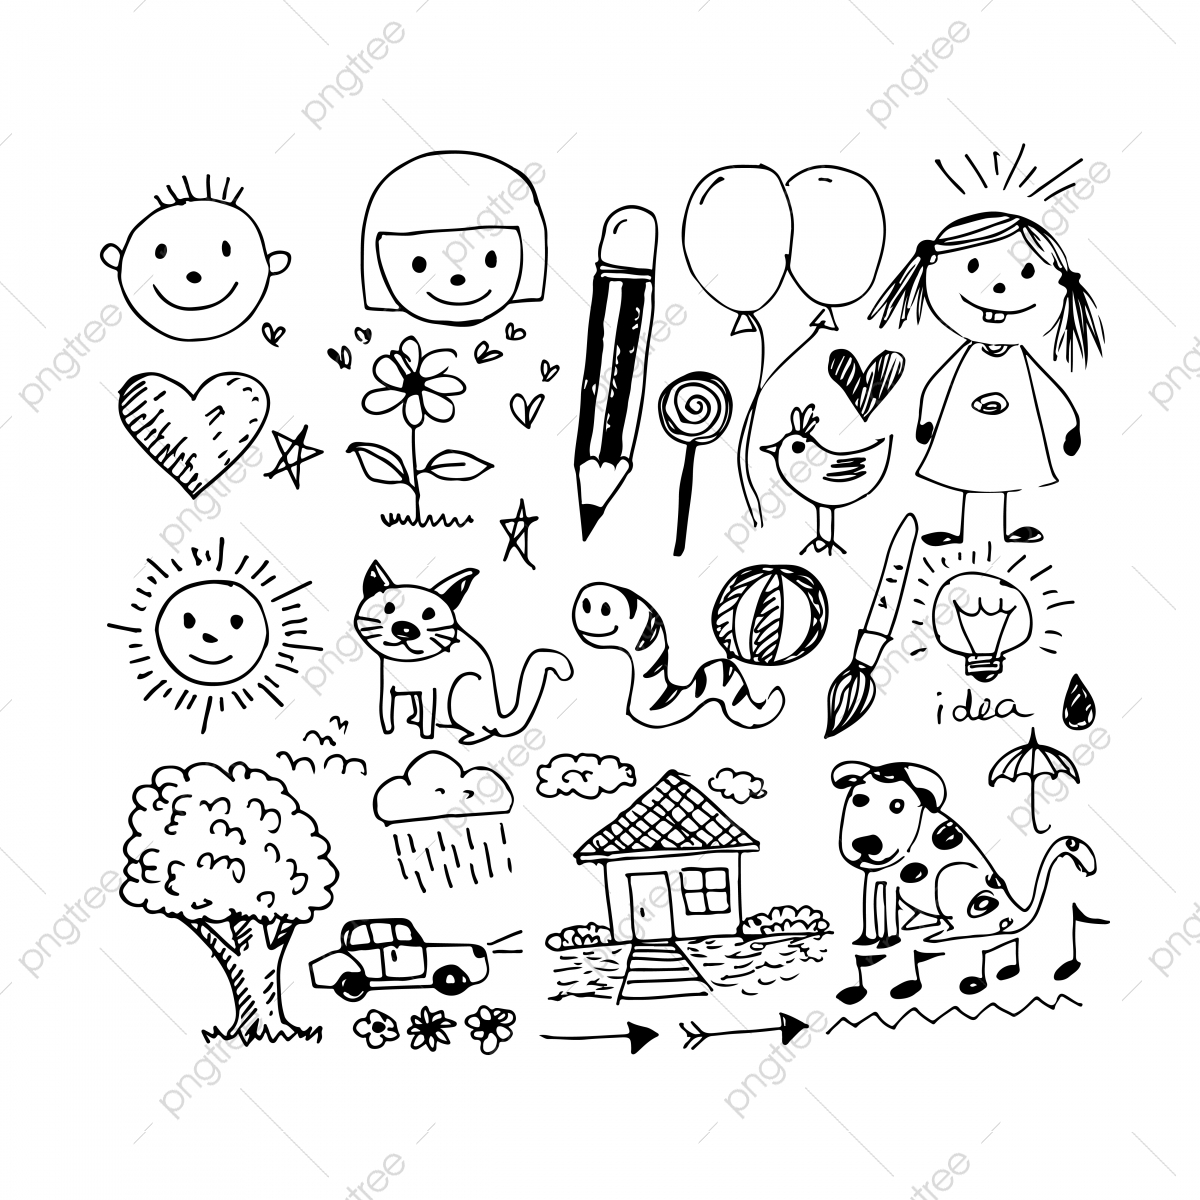 pngtree children hand draw doodle icon png image